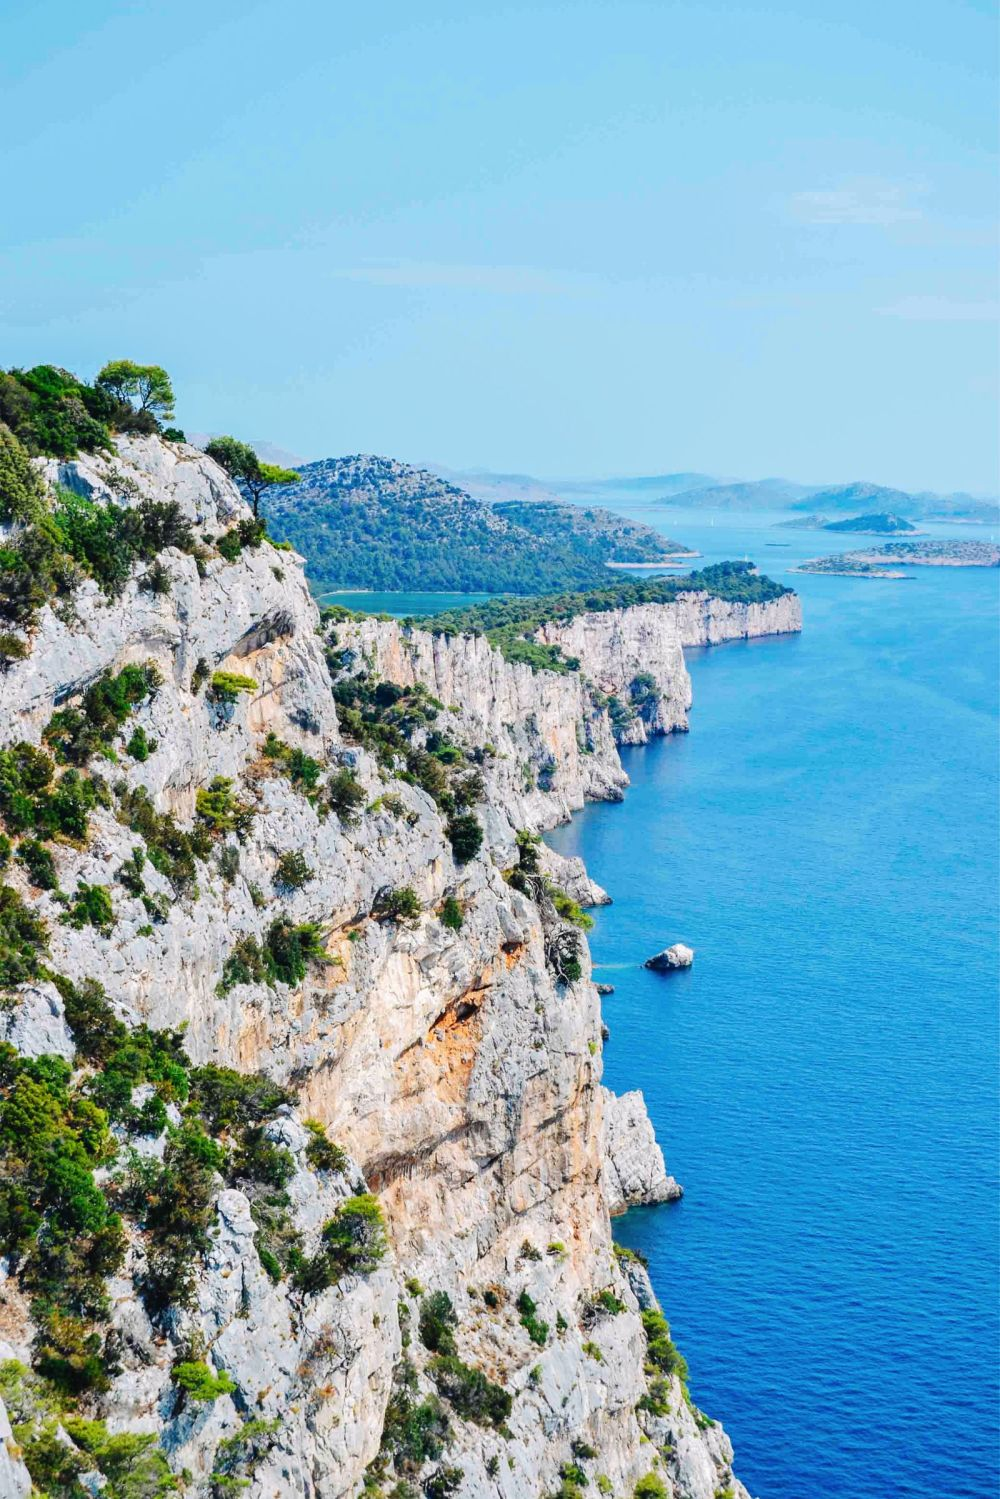 10-beautiful-croatian-islands-youll-want-to-visit (5)